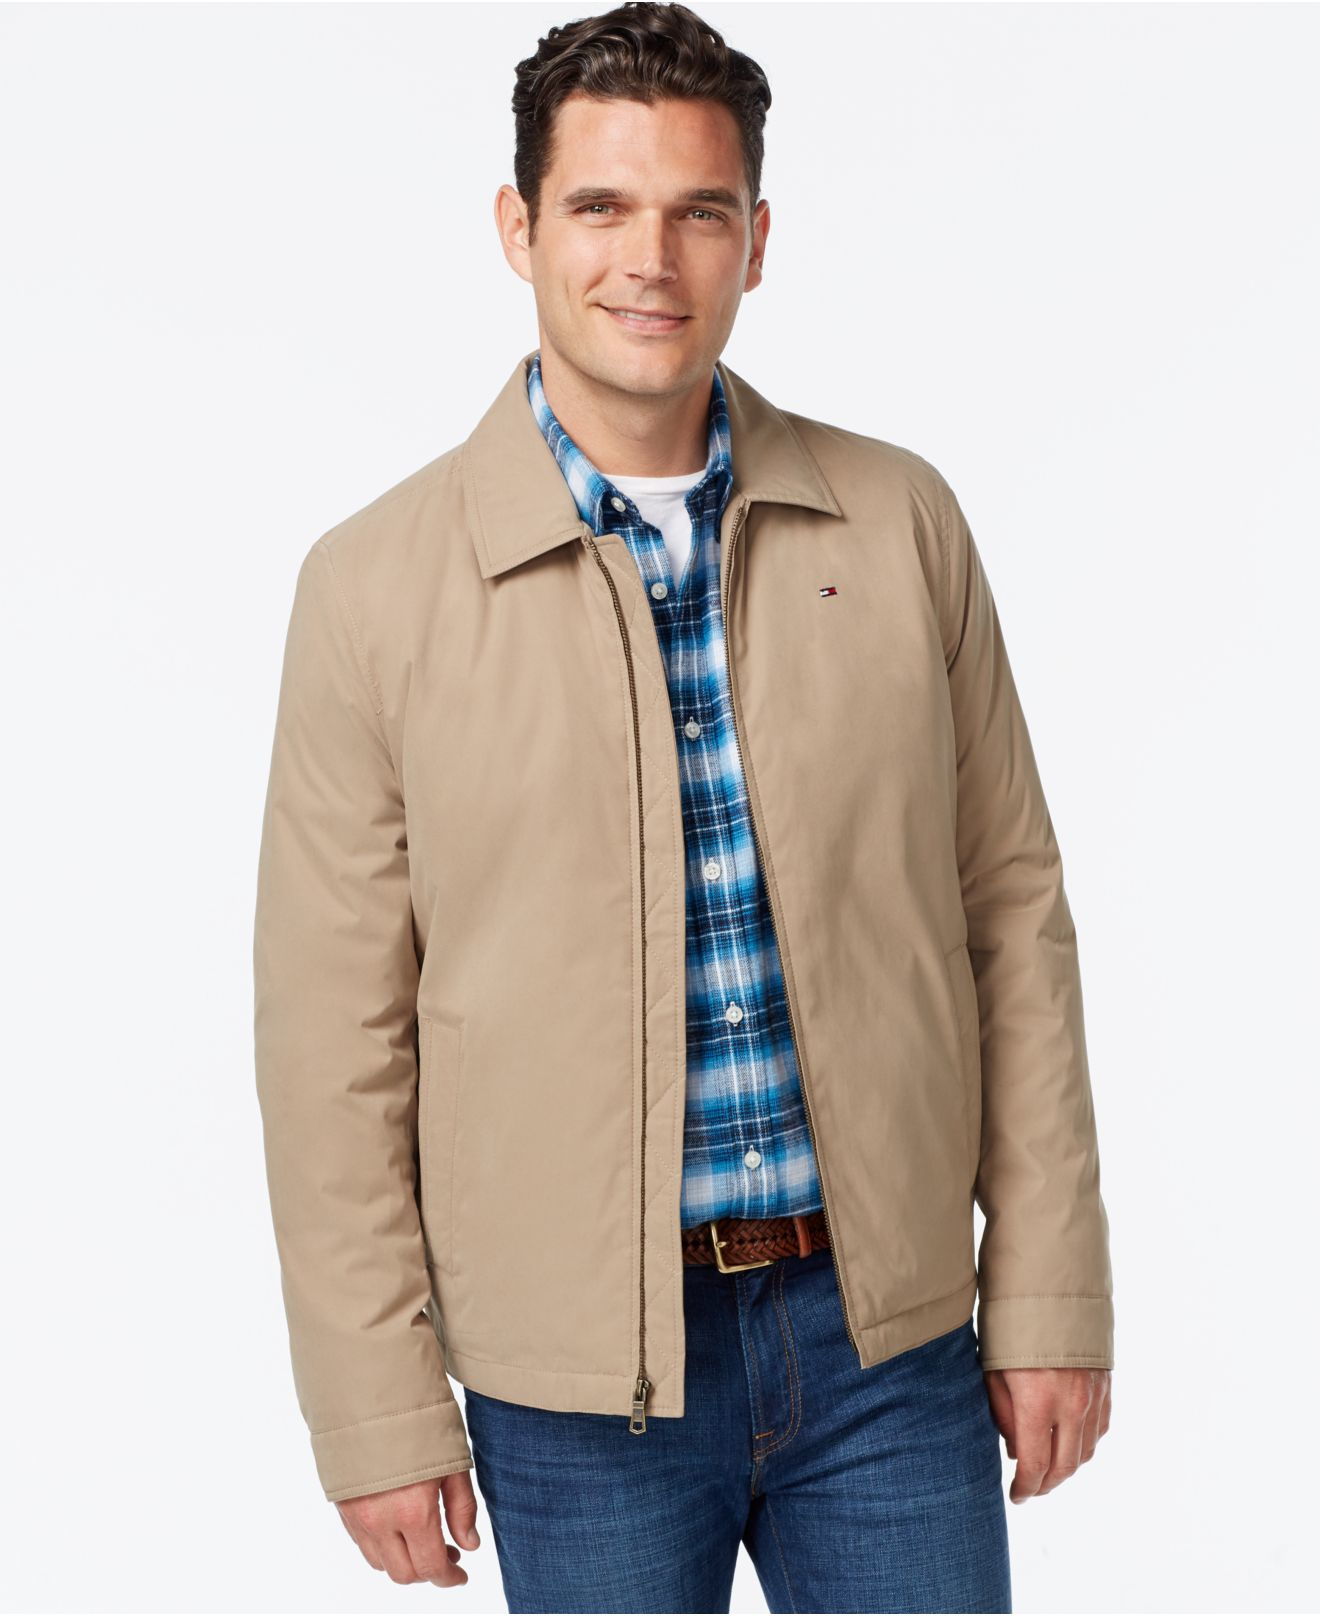 ea4c5046d24 Lyst - Tommy Hilfiger Big   Tall Full-zip Micro-twill Jacket in ...